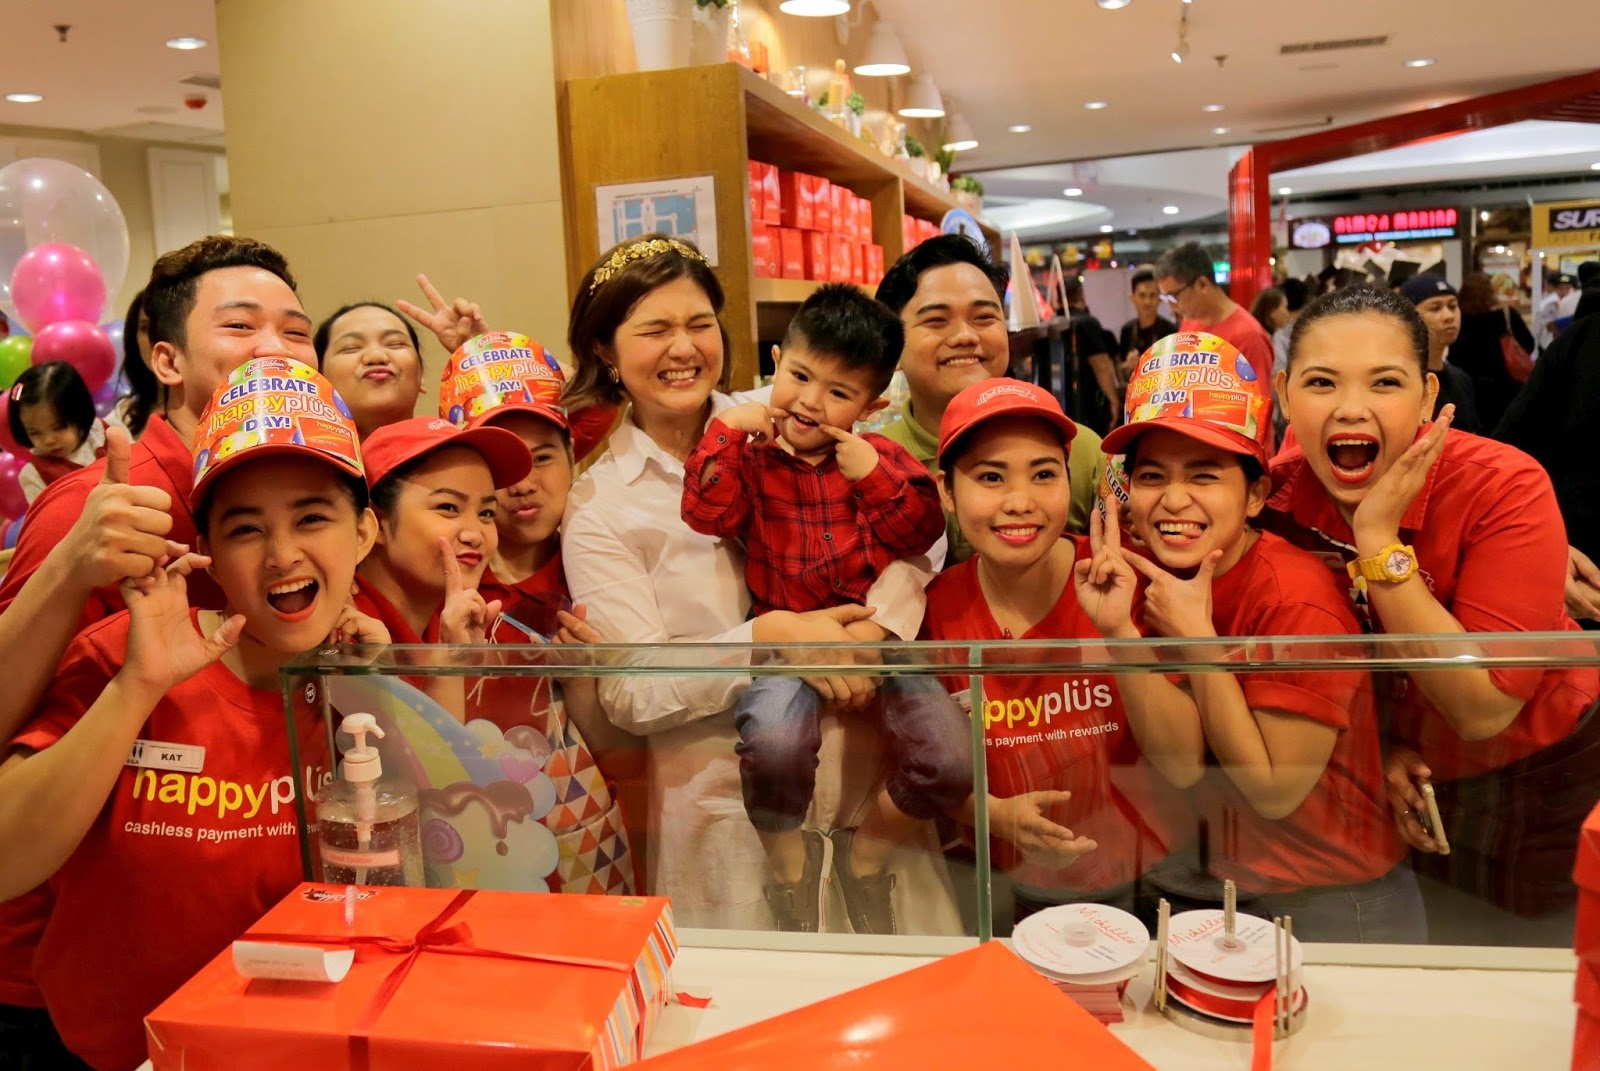 This is e life red ribbon rainbow surprise fan meet and greet fans who came for the rainbow surprise meet at red ribbon in sm megamall mandaluyong city guests were able to spend time with their favorite celebrity m4hsunfo